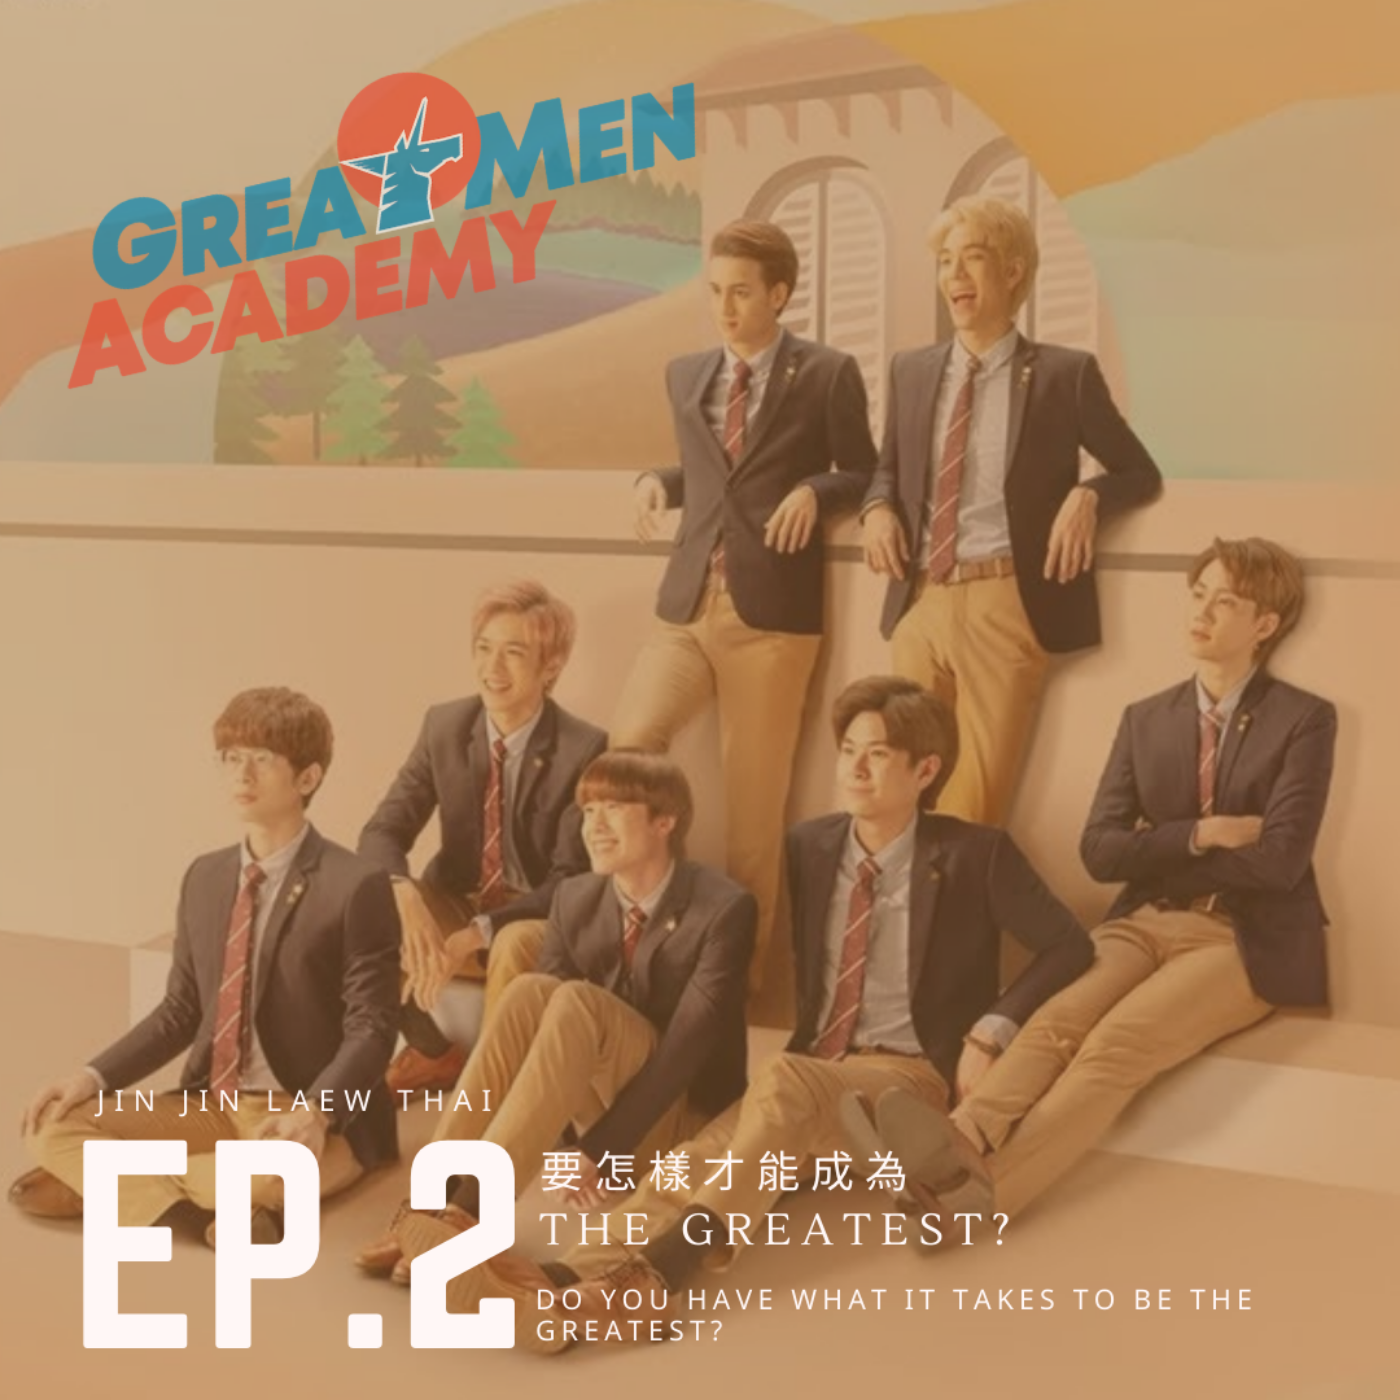 EP 2 - 要怎樣才能成為The Greatest? Do you have what it takes to be The Greatest?